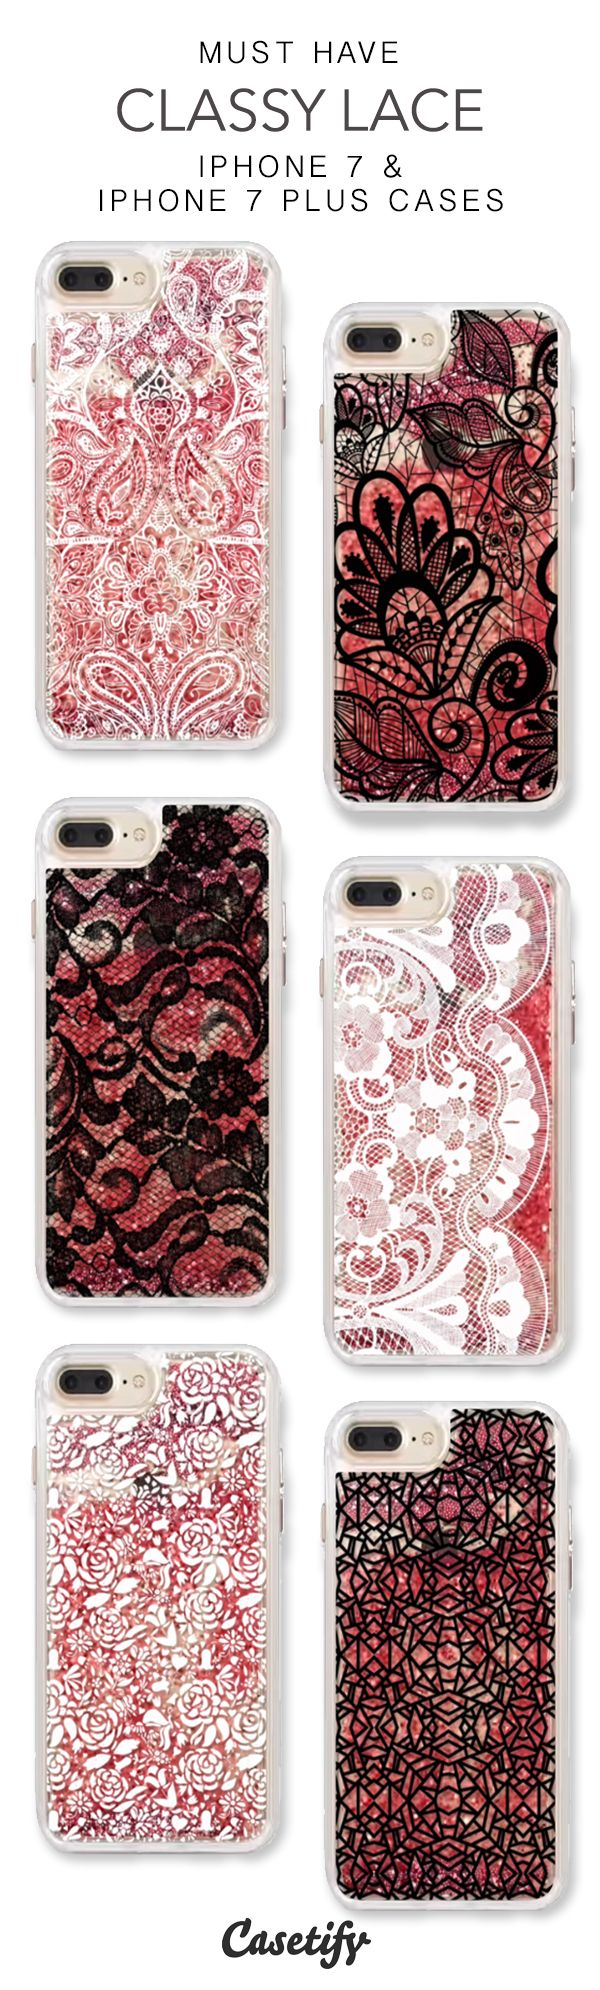 Must Have Classy Lace iPhone 7 Cases & iPhone 7 Plus Cases. More protective liquid glitter pattern iPhone case here > https://www.casetify.com/en_US/collections/iphone-7-glitter-cases#/?vc=grpxAOnseo